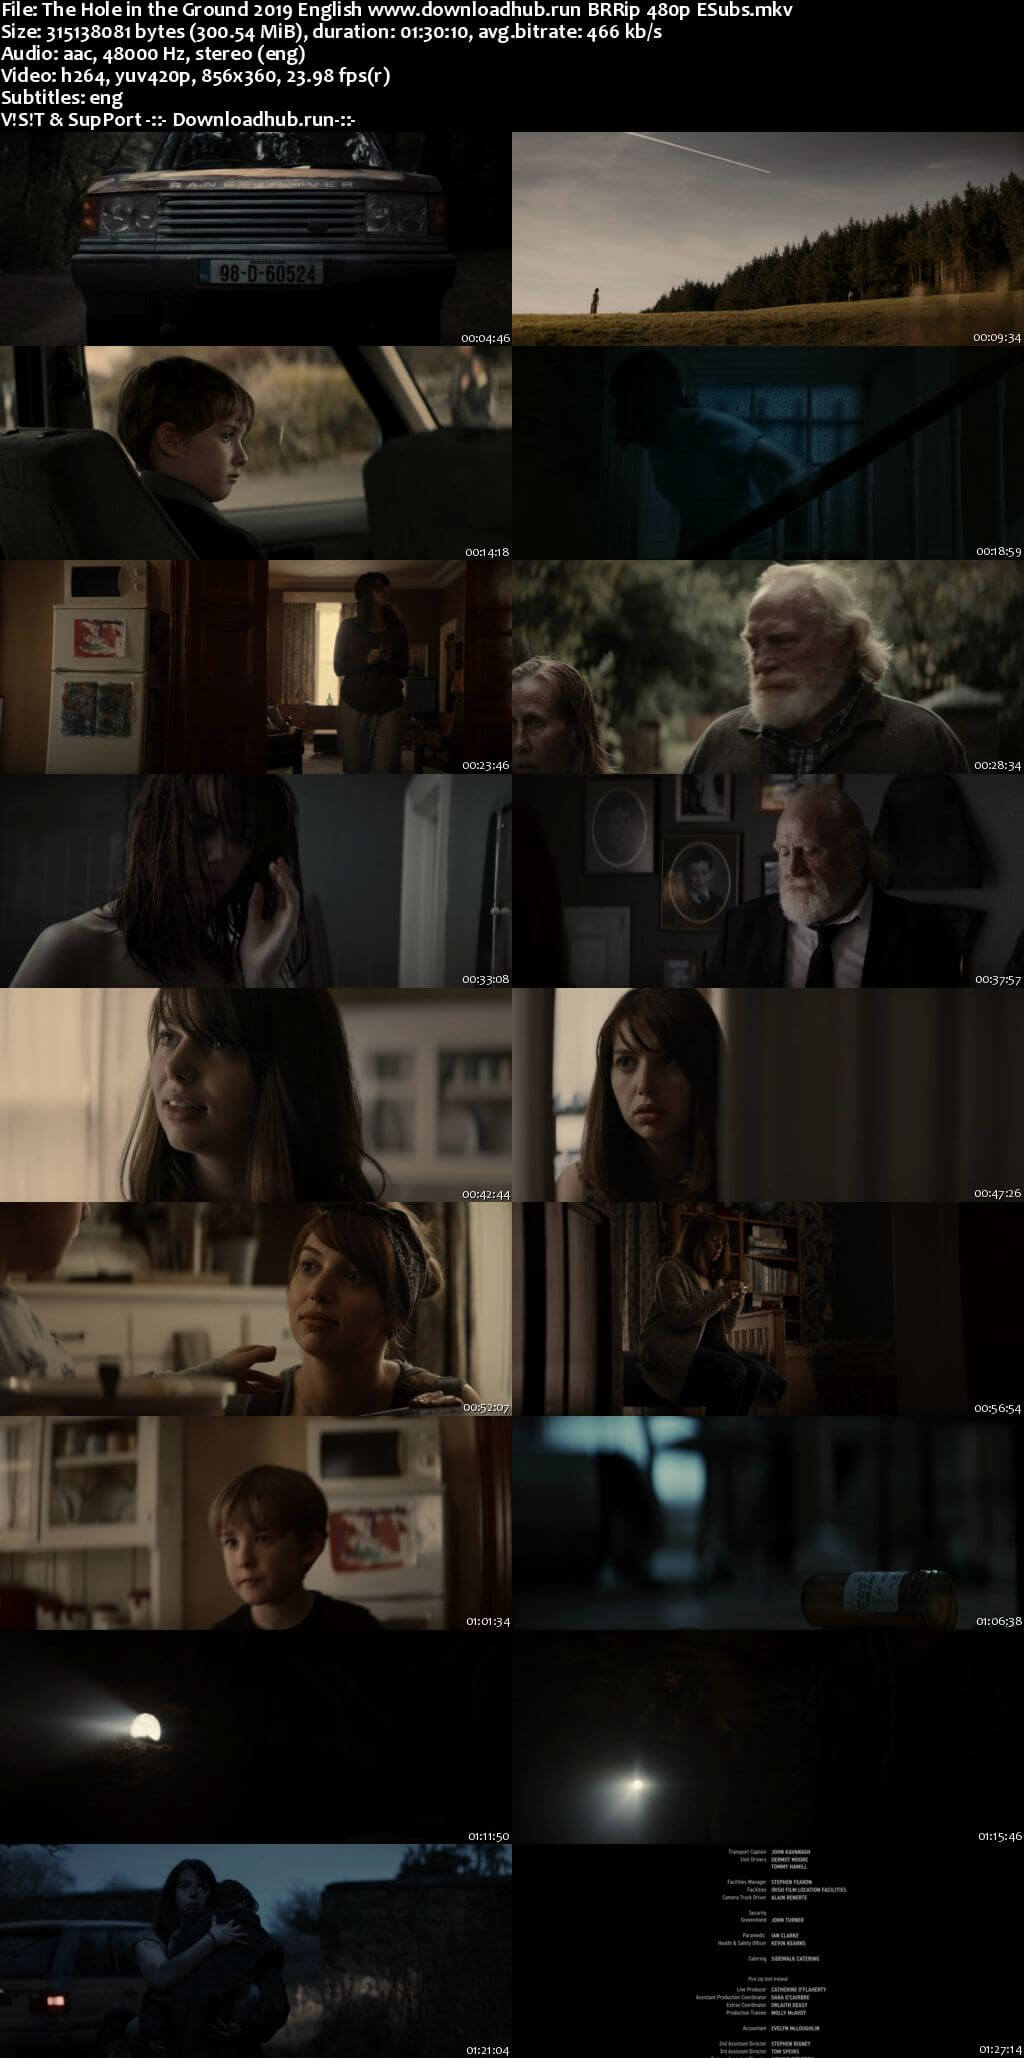 The Hole in the Ground 2019 English 300MB BRRip 480p ESubs